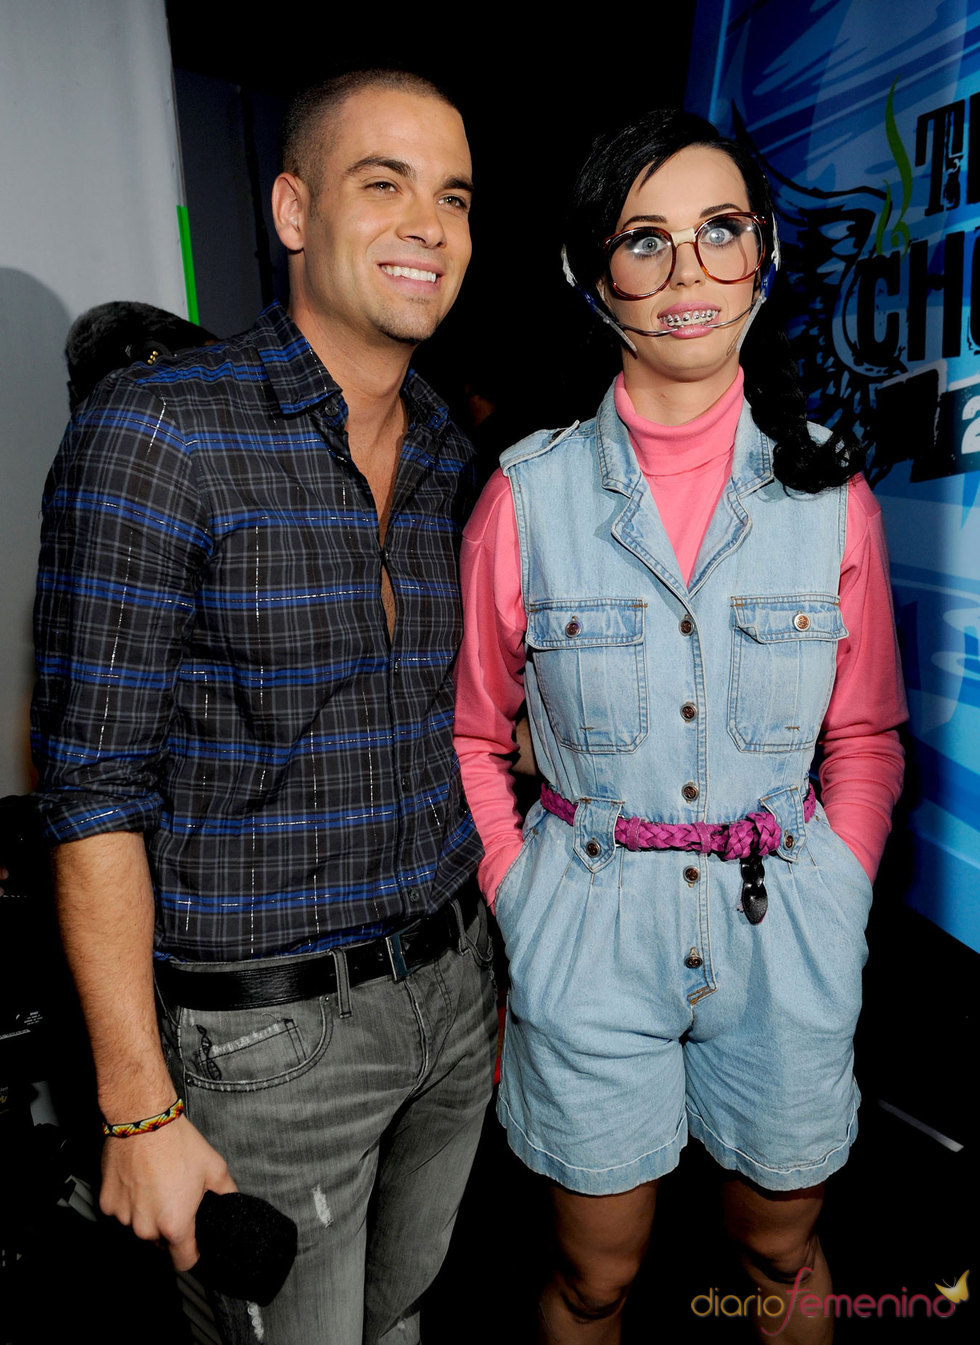 Katy Perry y Mark Salling de 'Glee' en el Teen Choice Awards 2010